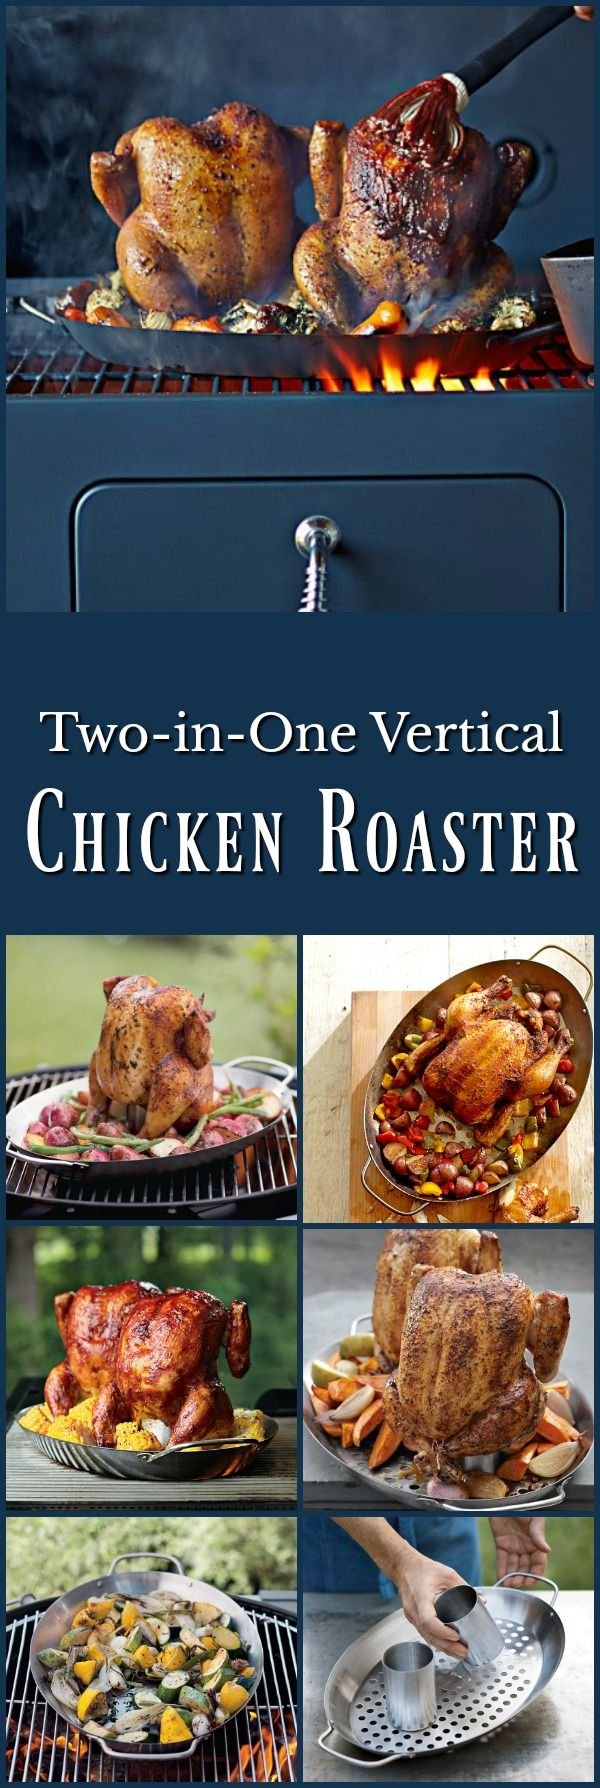 Two in One Vertical Chicken Roaster - Grill one or two whole chickens at the same time with this versatile roaster. #grilling #ad #chickendinner